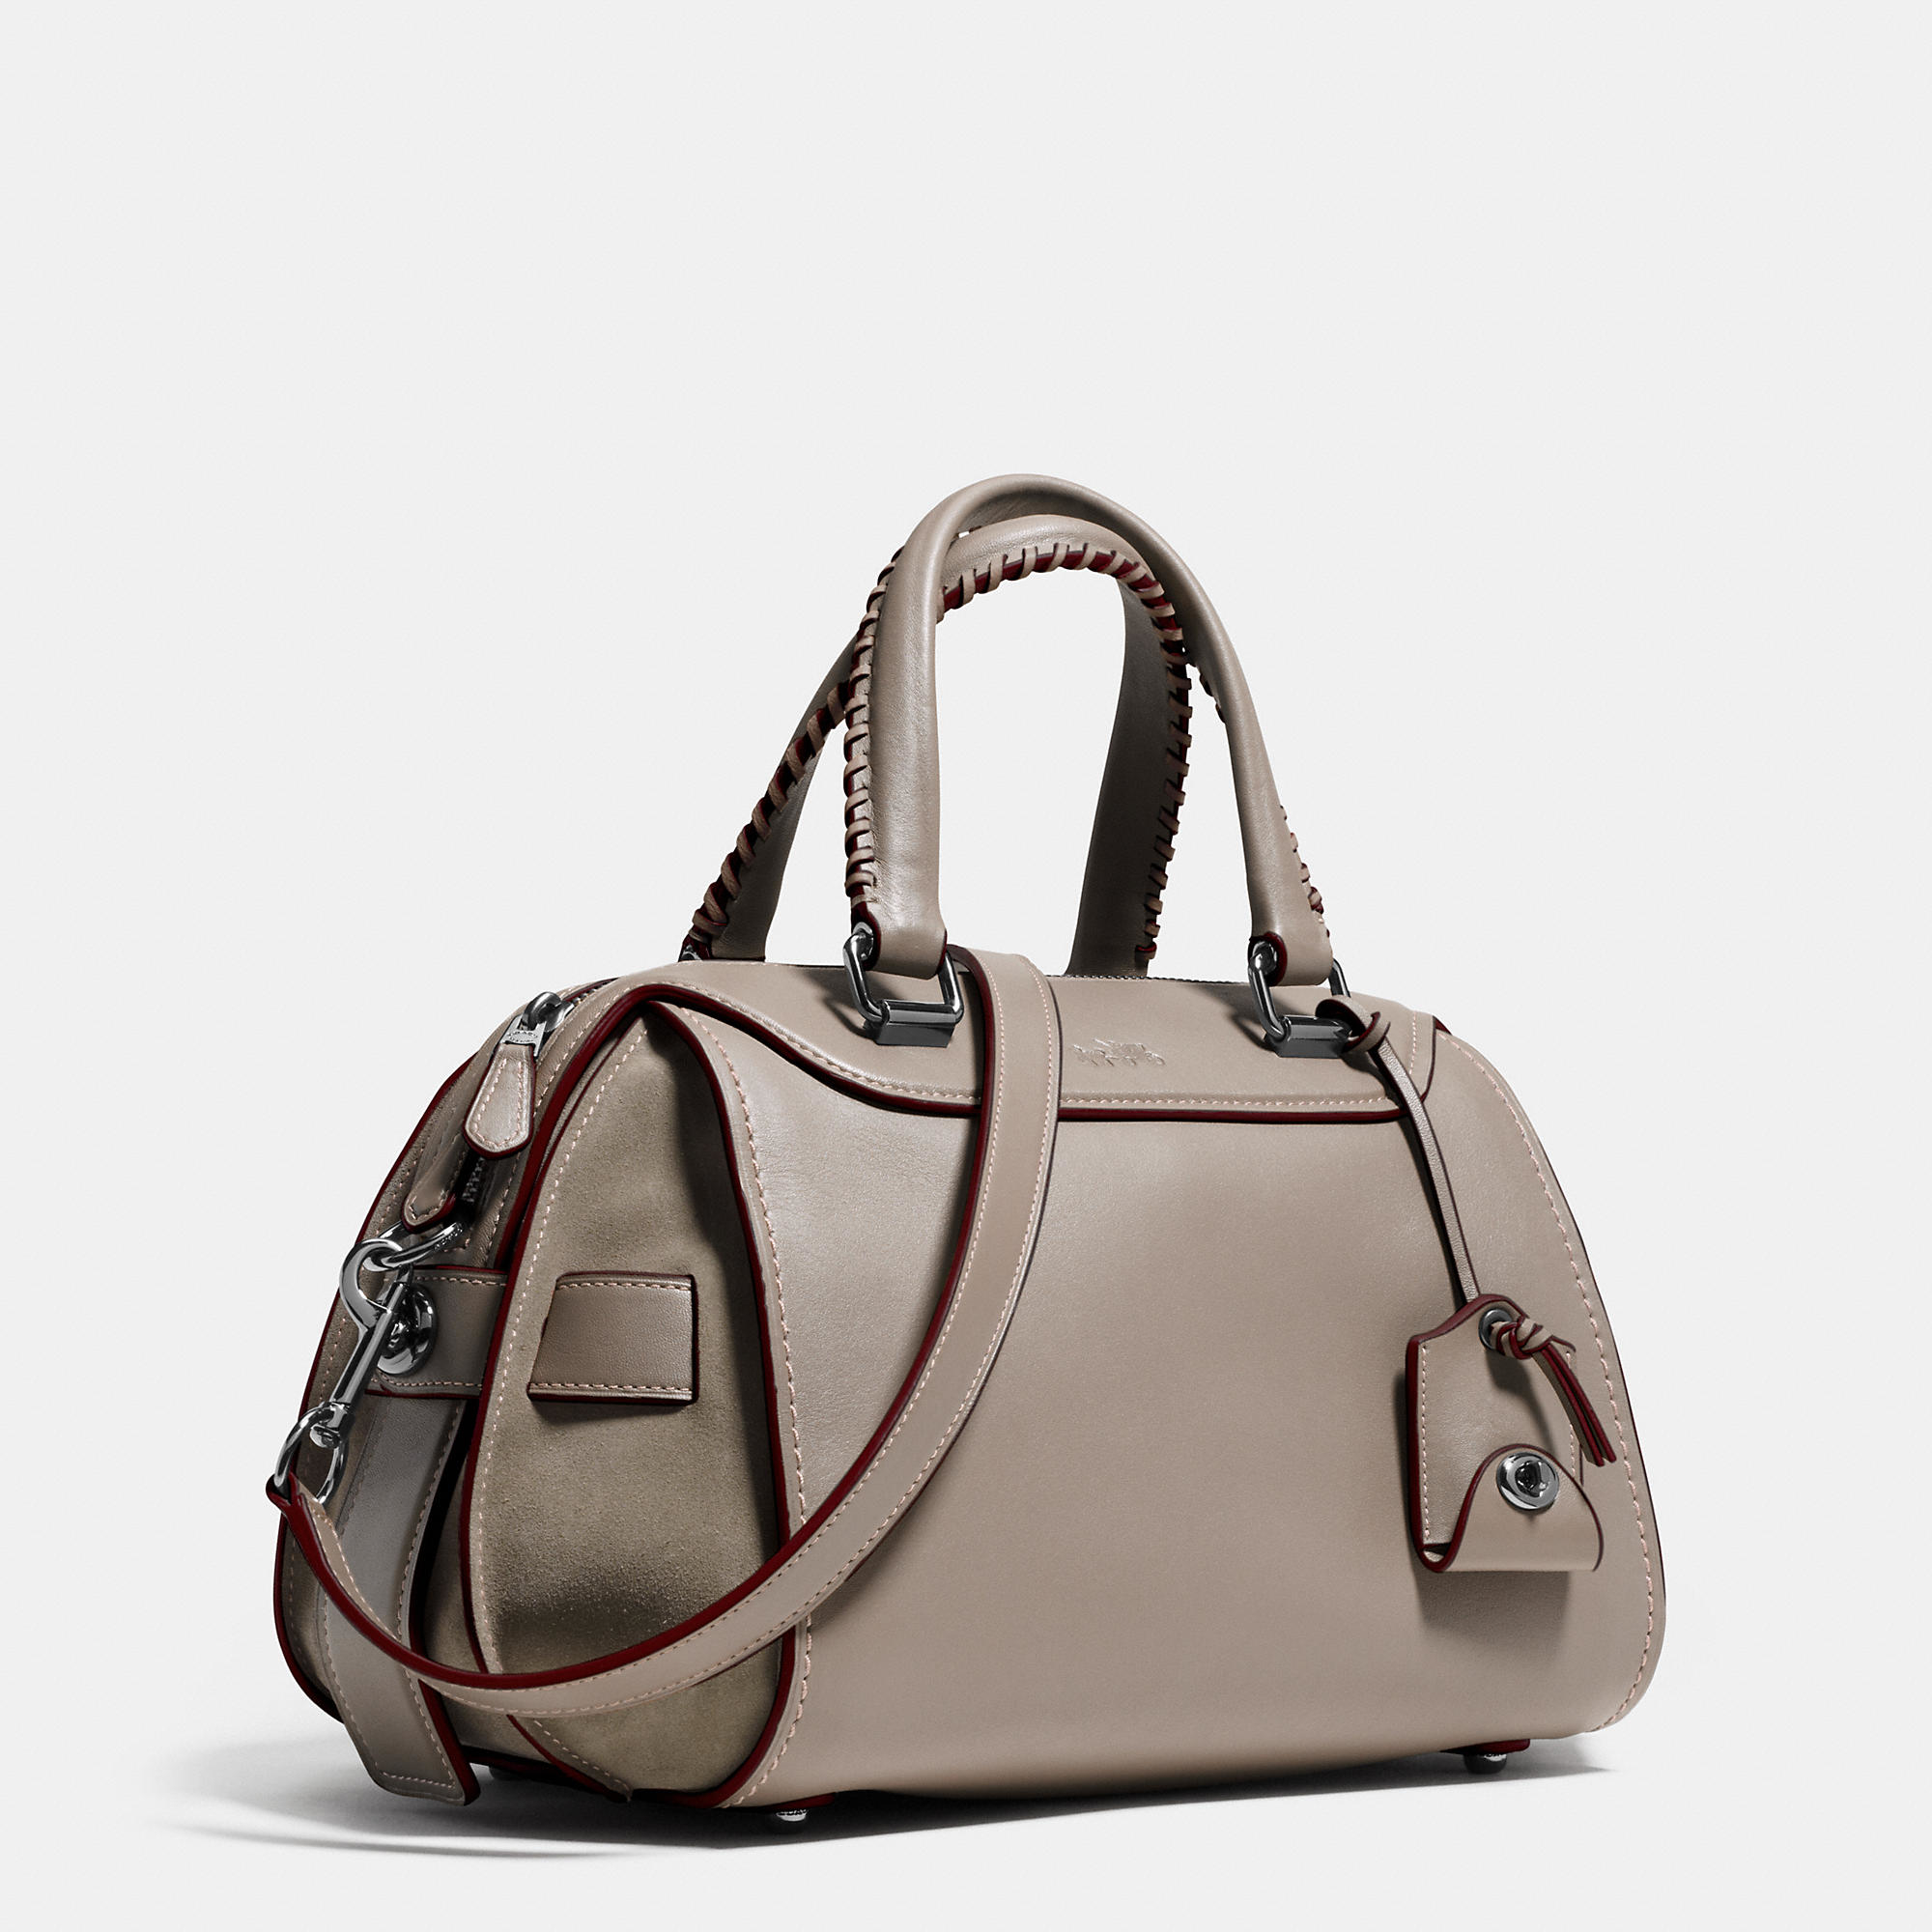 a9489bd536 sweden coach fashion signature medium black shoulder bags dzj c1d43 2dc6f   best lyst coach ace satchel in glovetanned leather and suede in gray 3fc99  91a2b